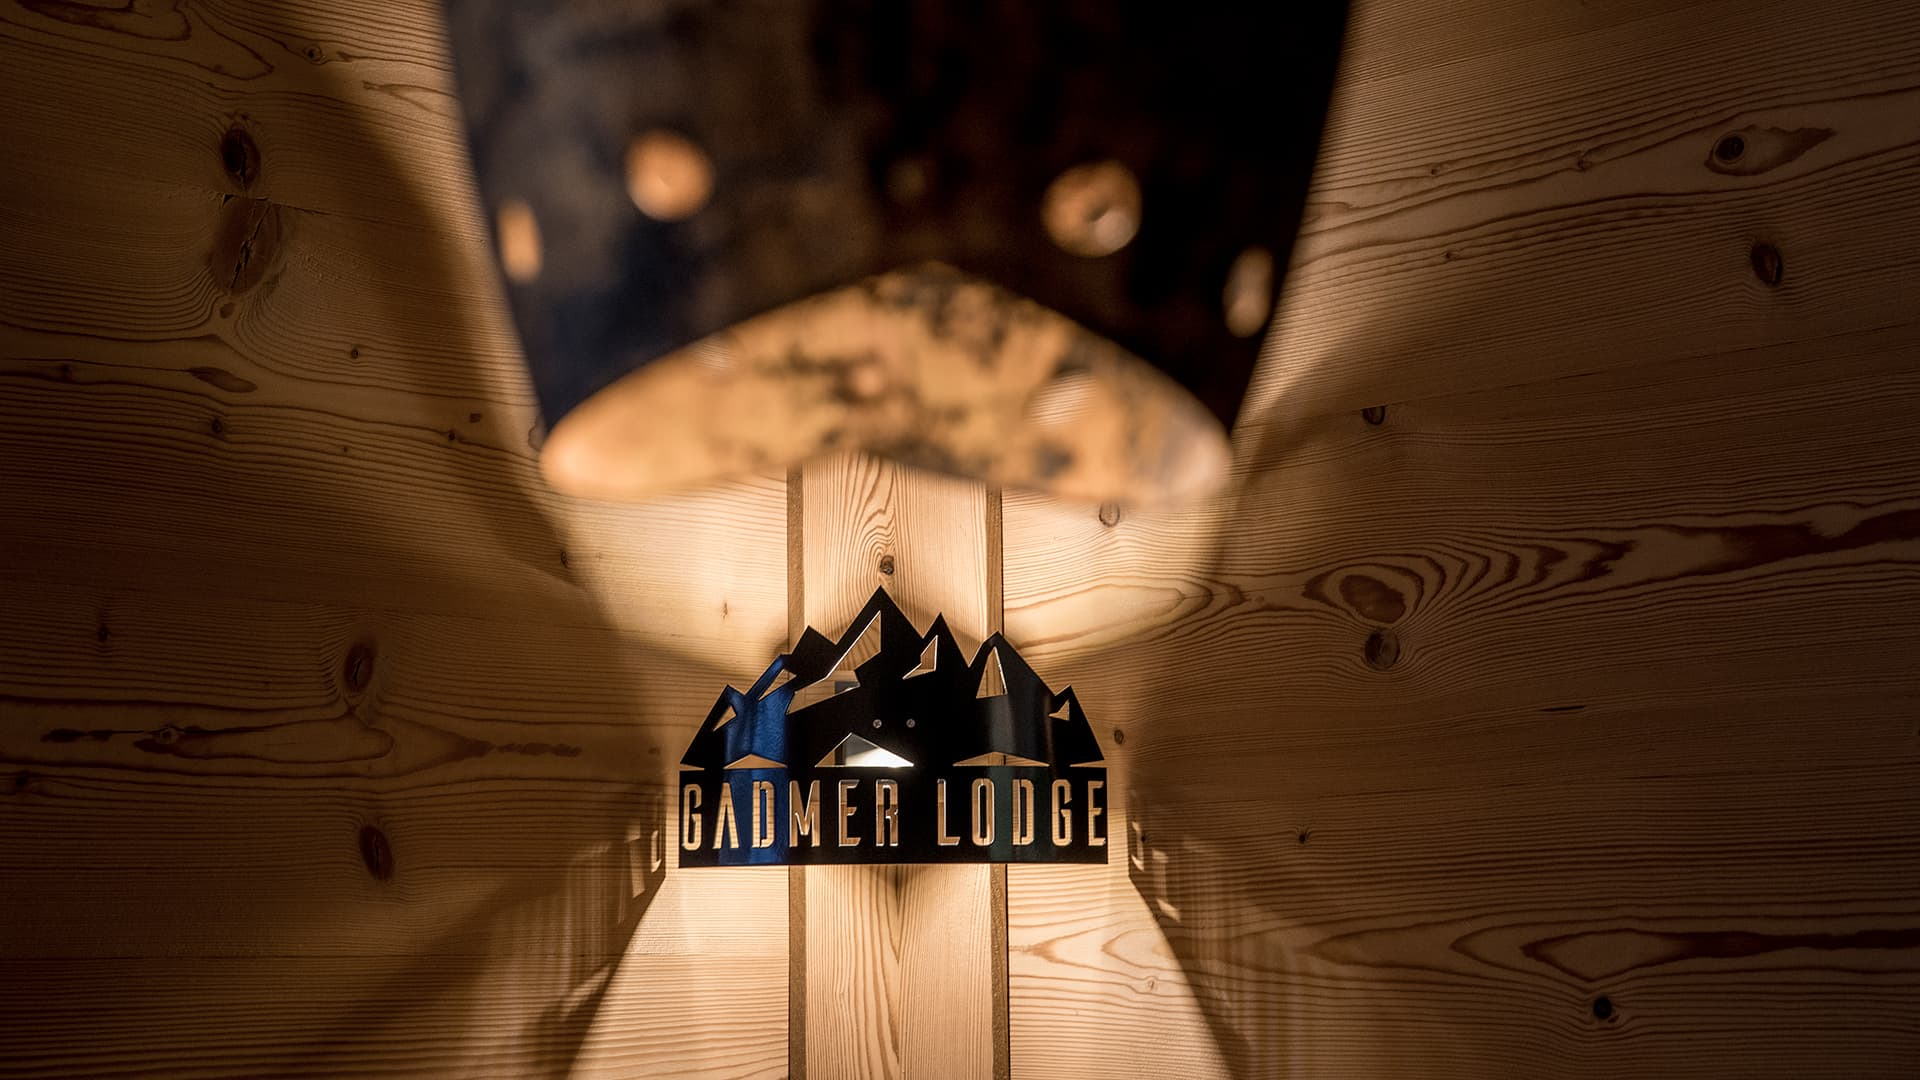 gadmer-lodge-dbirri4